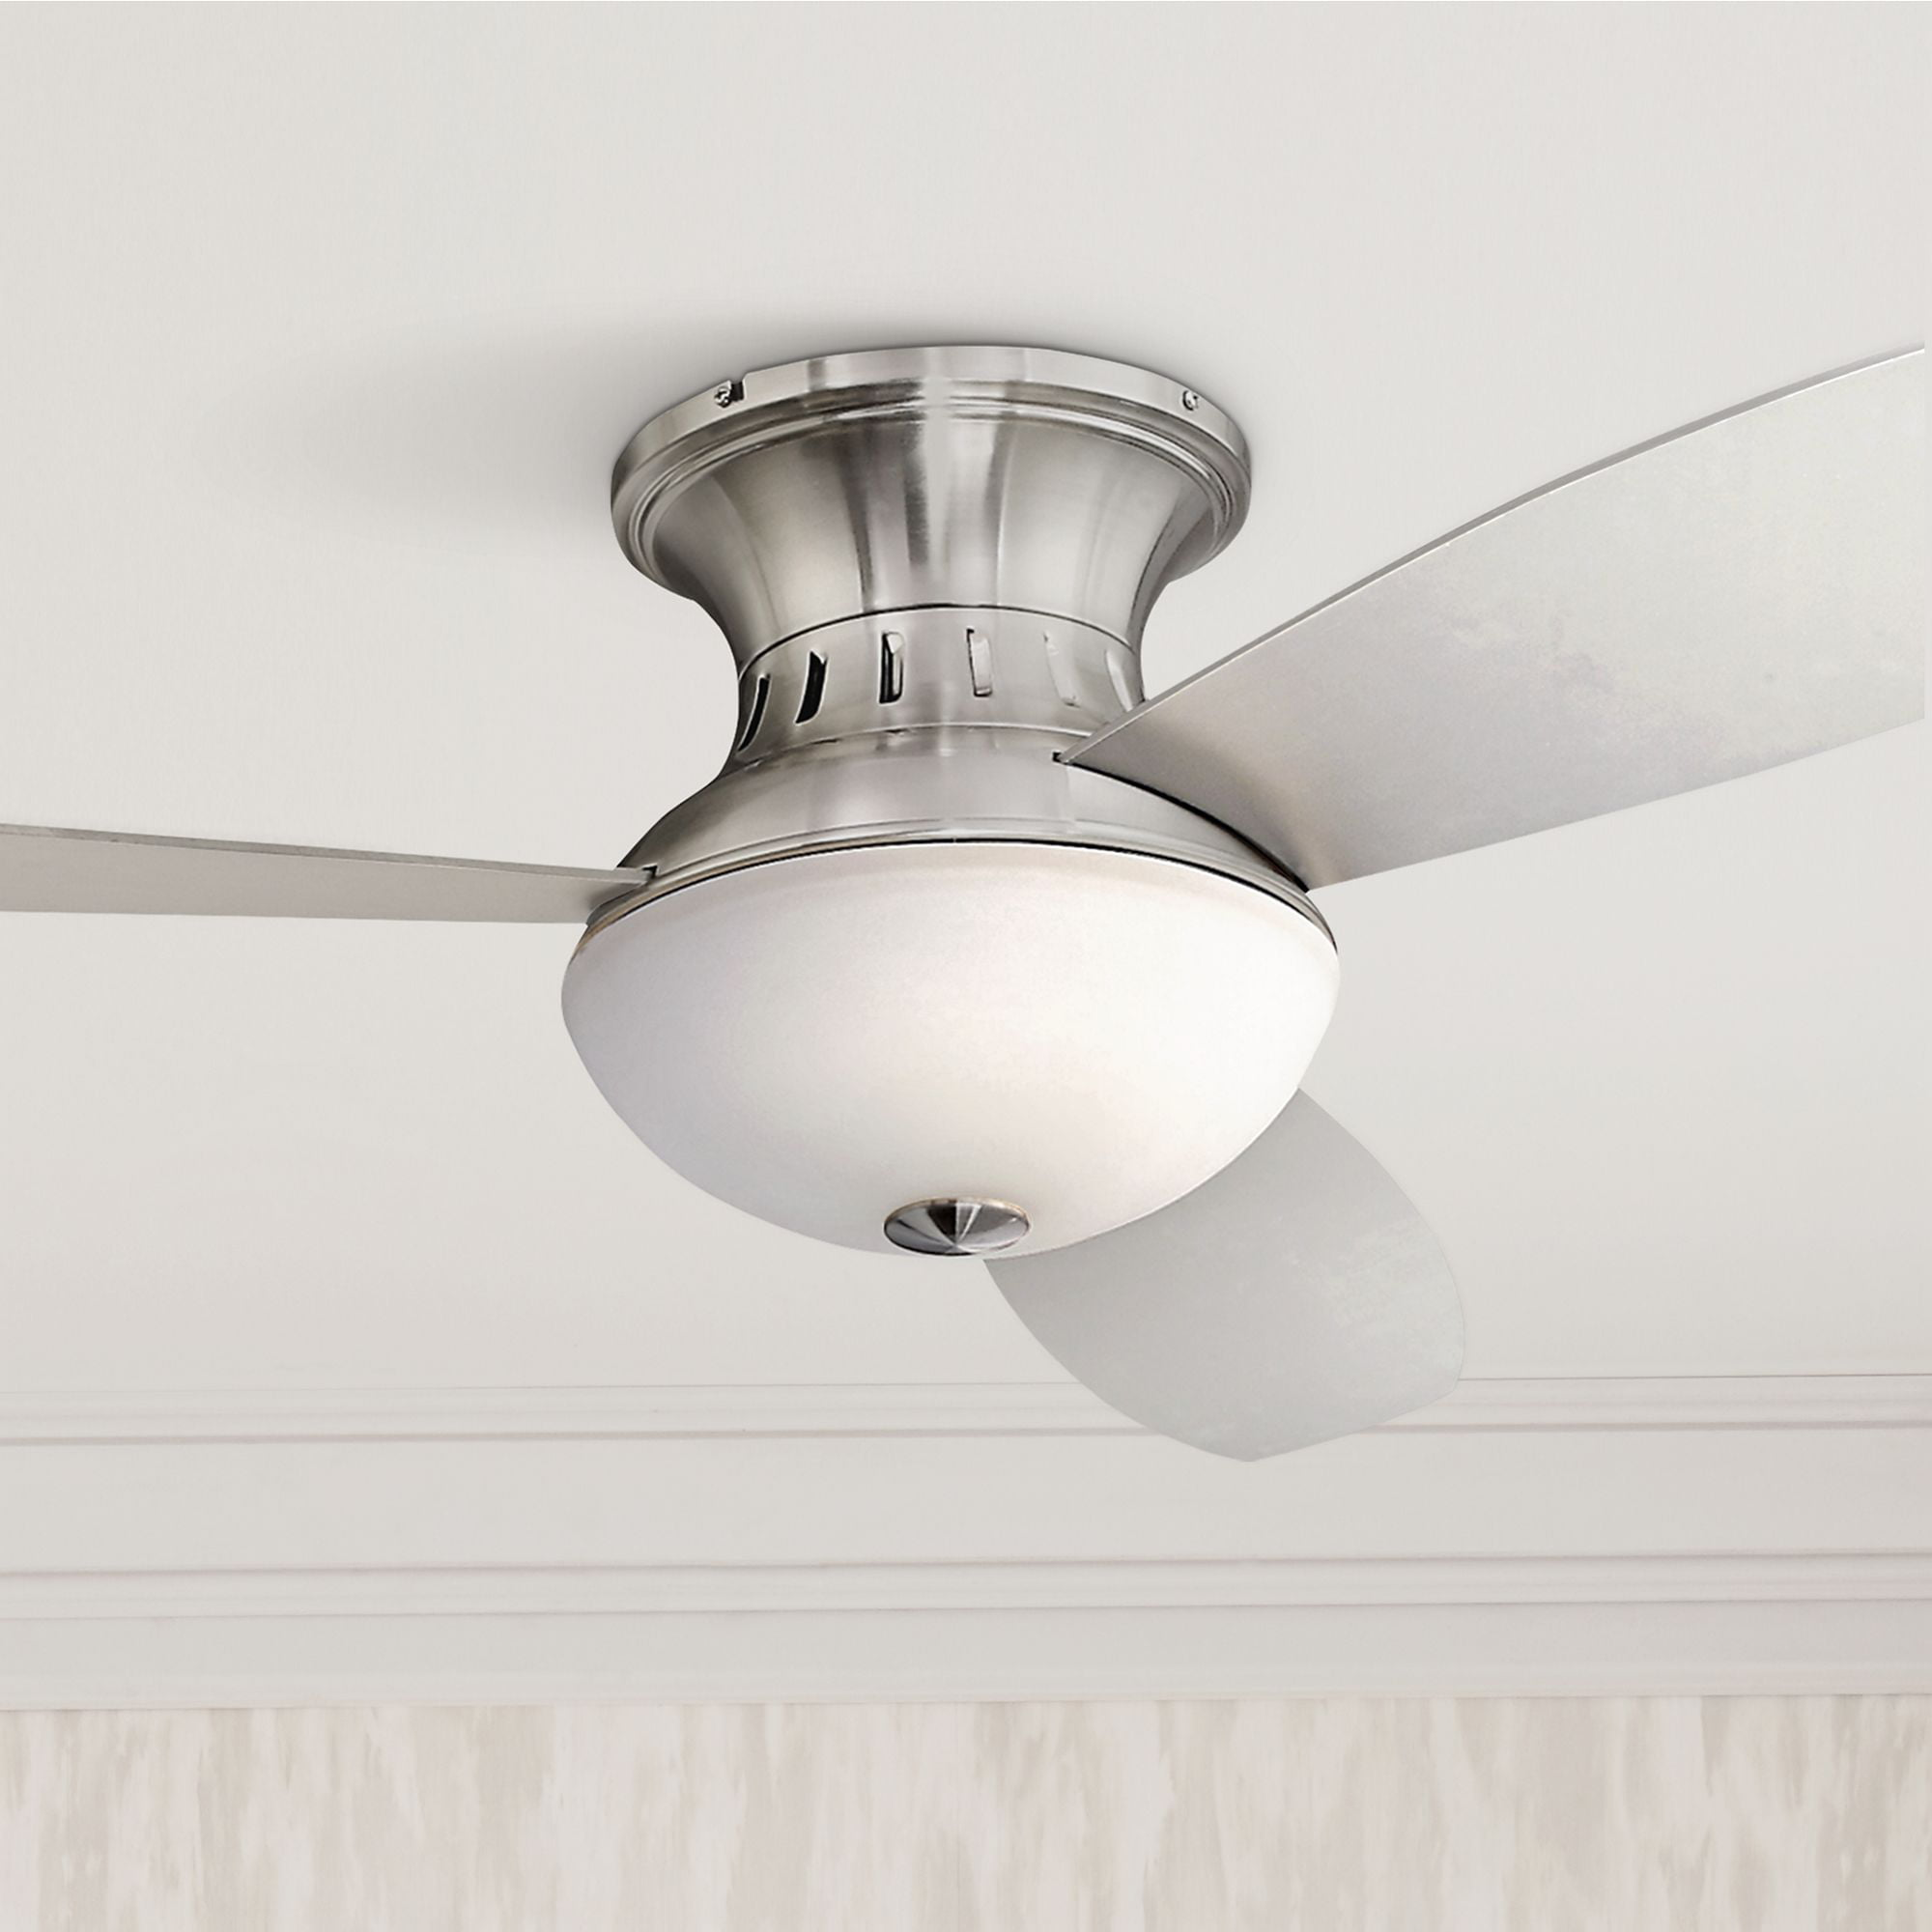 52 Quot Possini Euro Design Modern Hugger Ceiling Fan With Light Led Remote Control Brushed Nickel